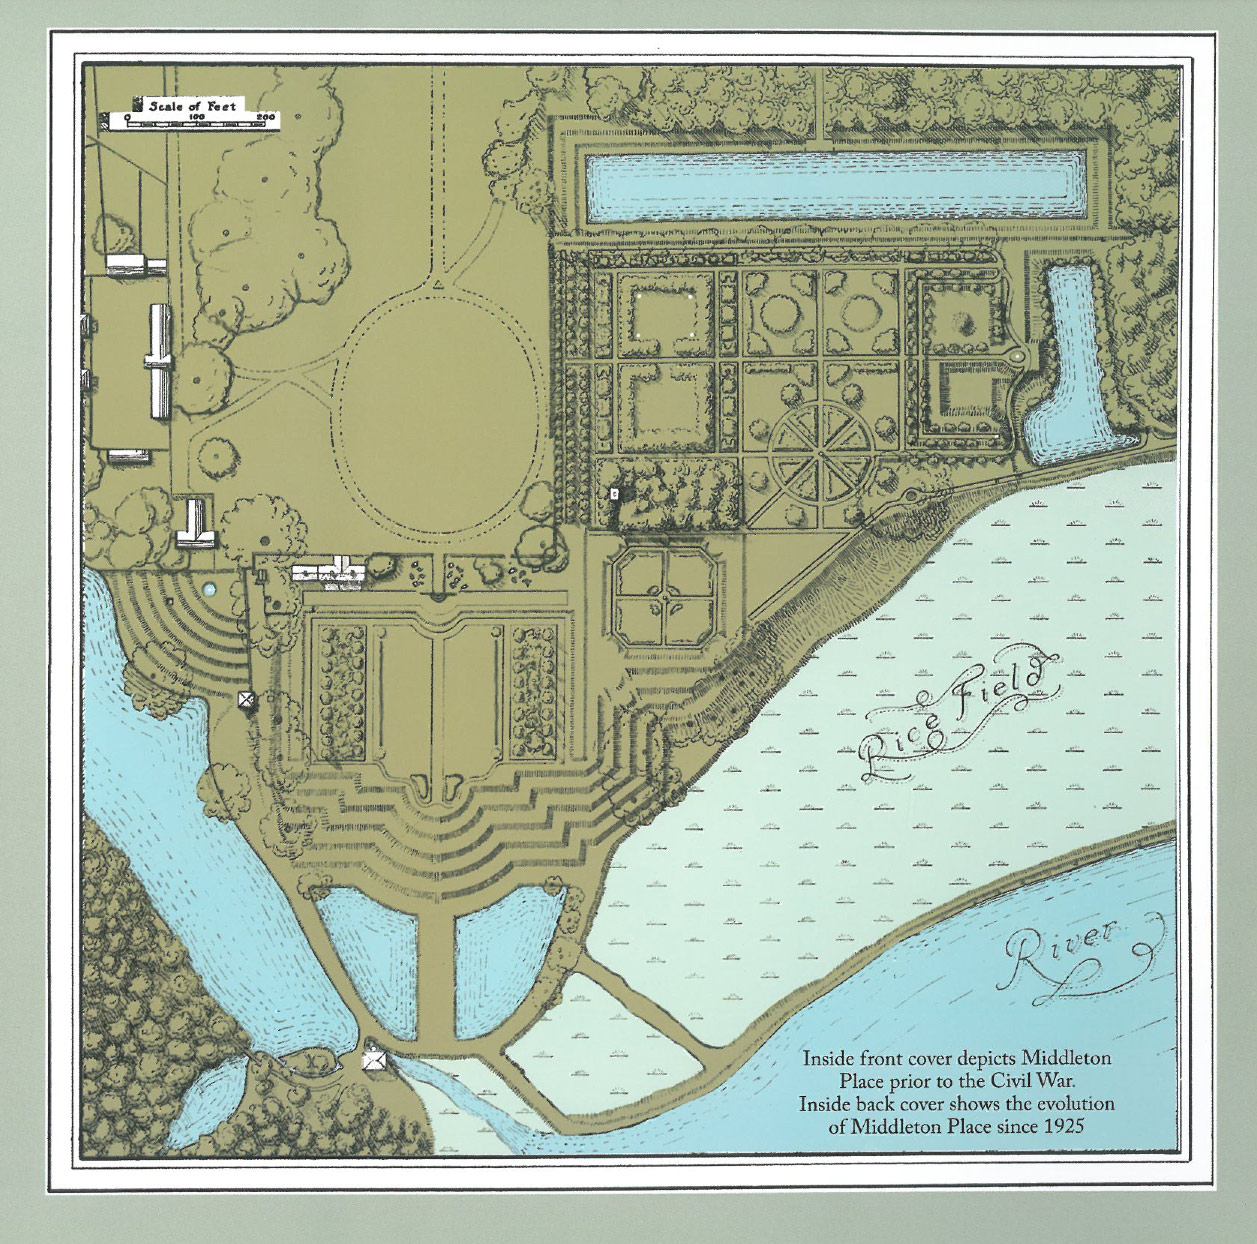 The Plan of Middleton Place's Garden, as it has been since 1925. Image courtesy of the Middleton Place Foundation.